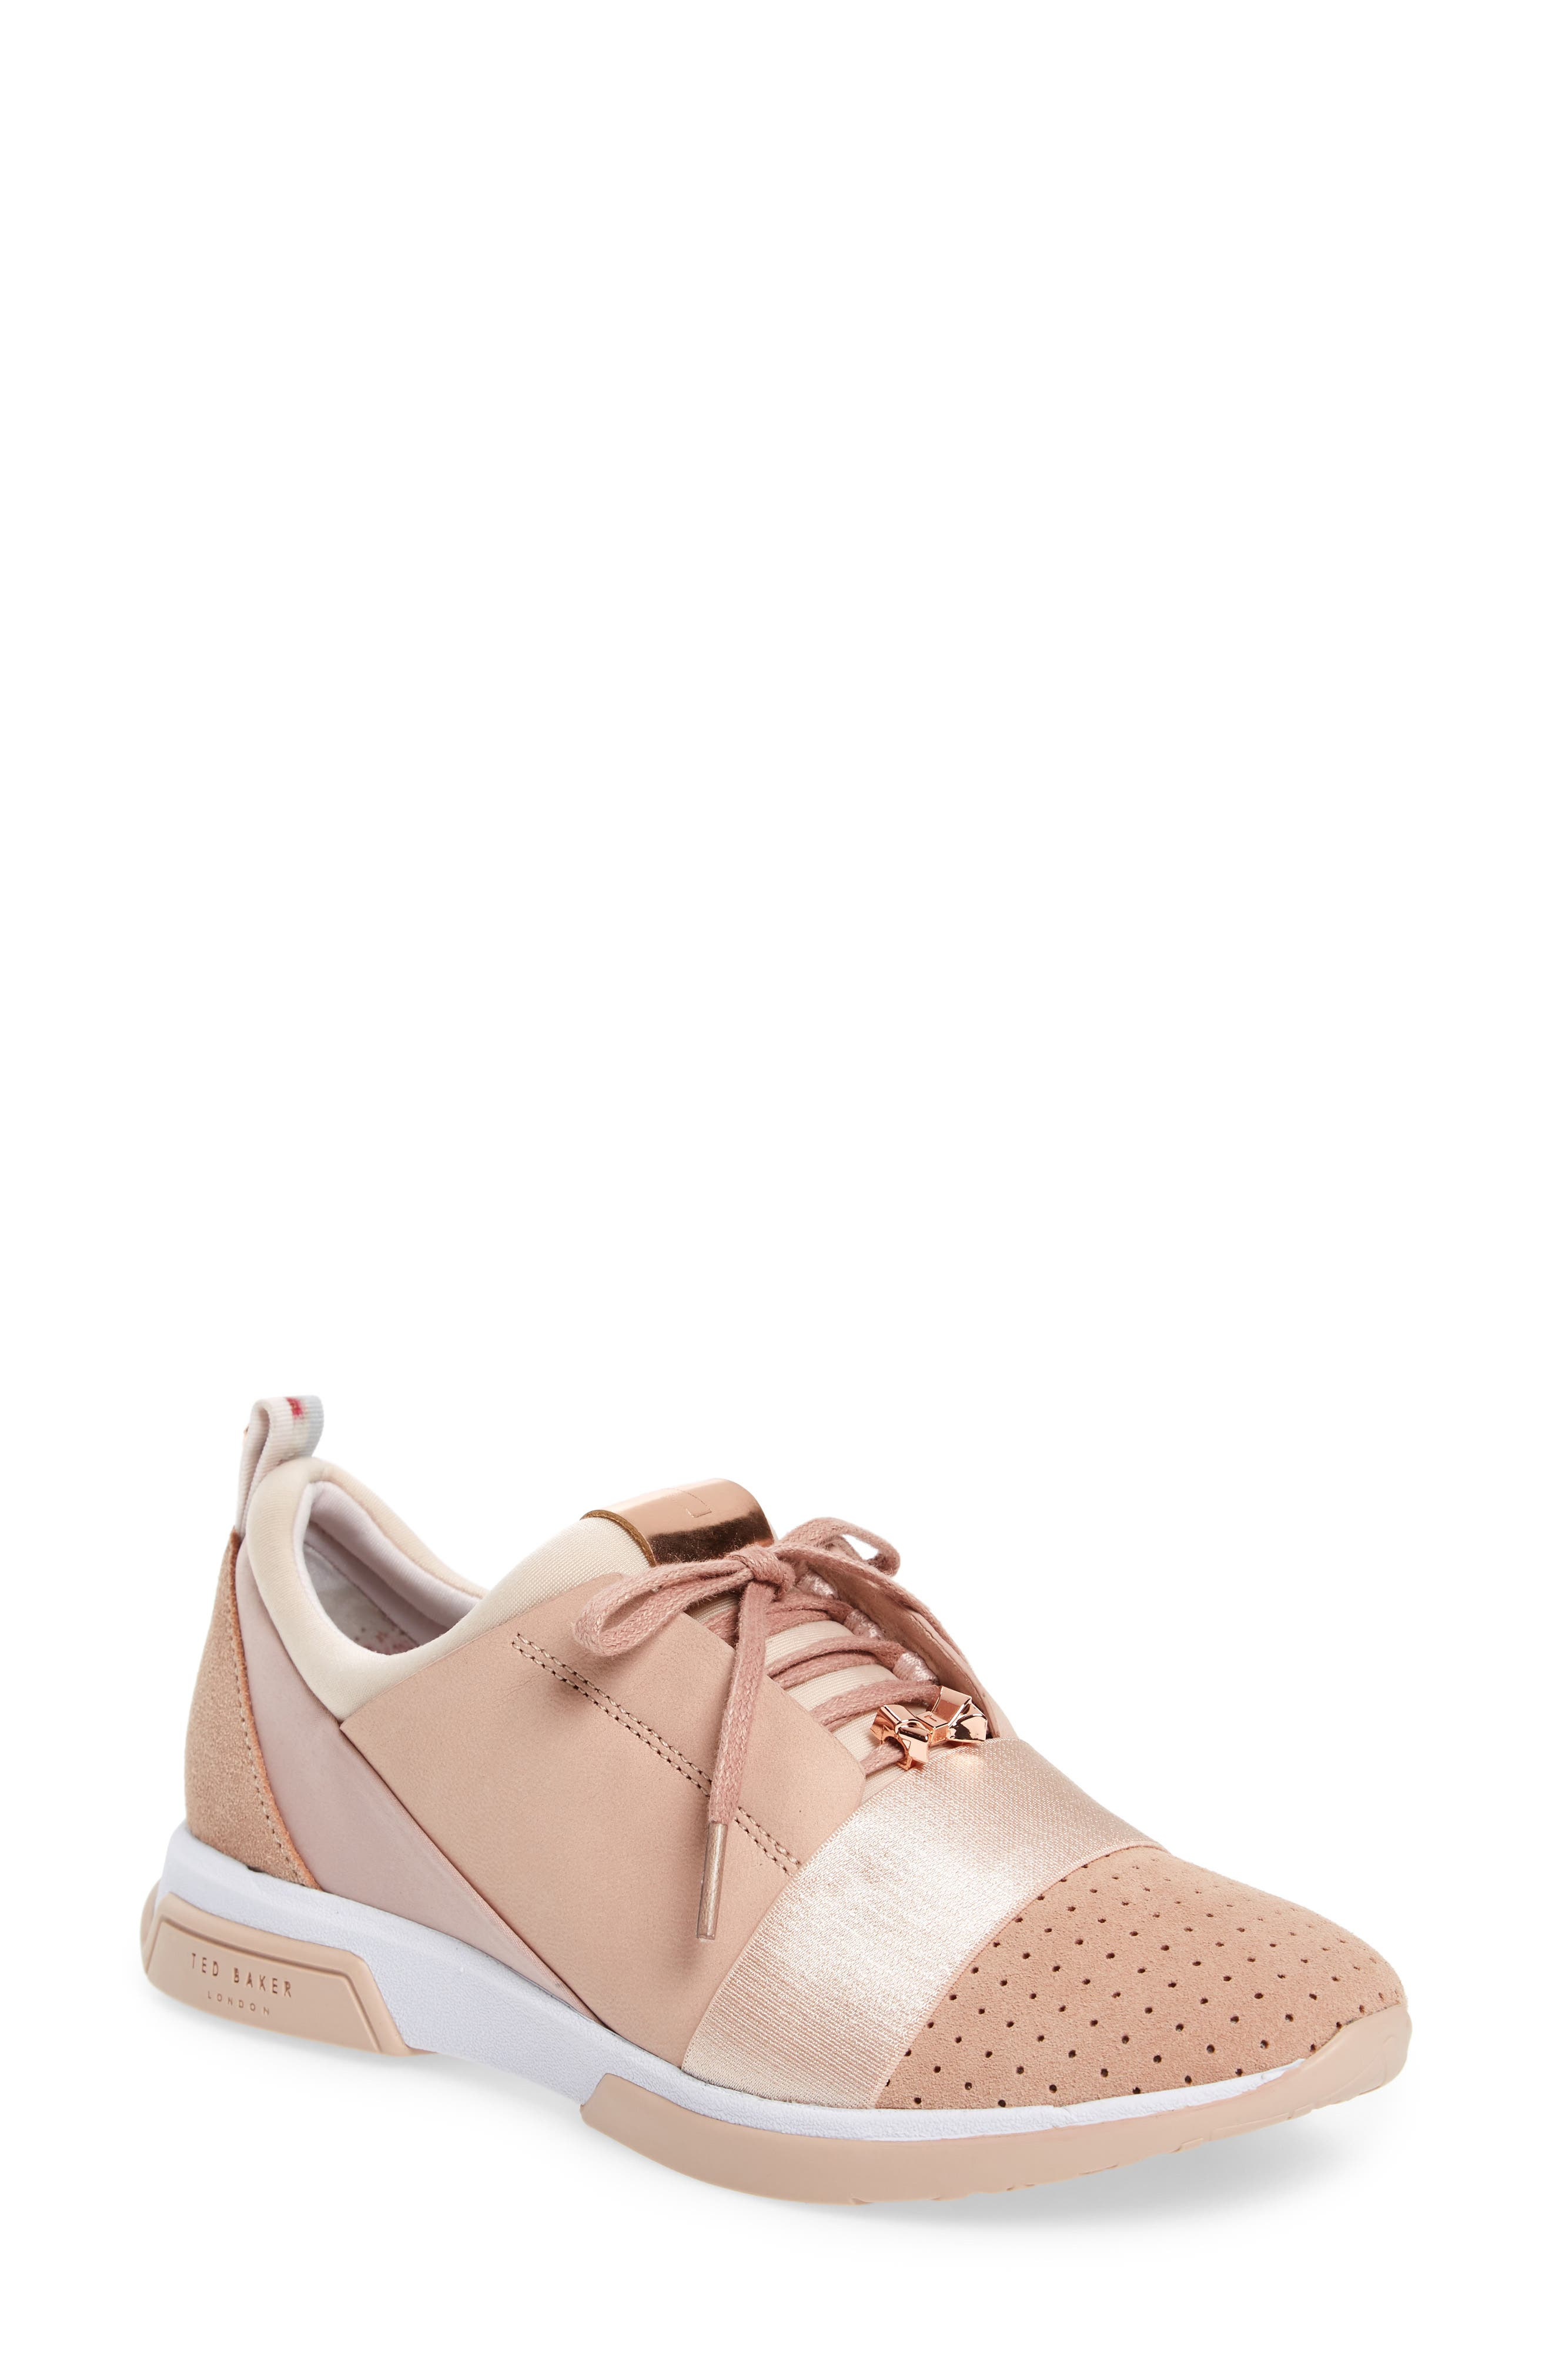 Cepa Sneaker,                             Main thumbnail 1, color,                             Light Pink